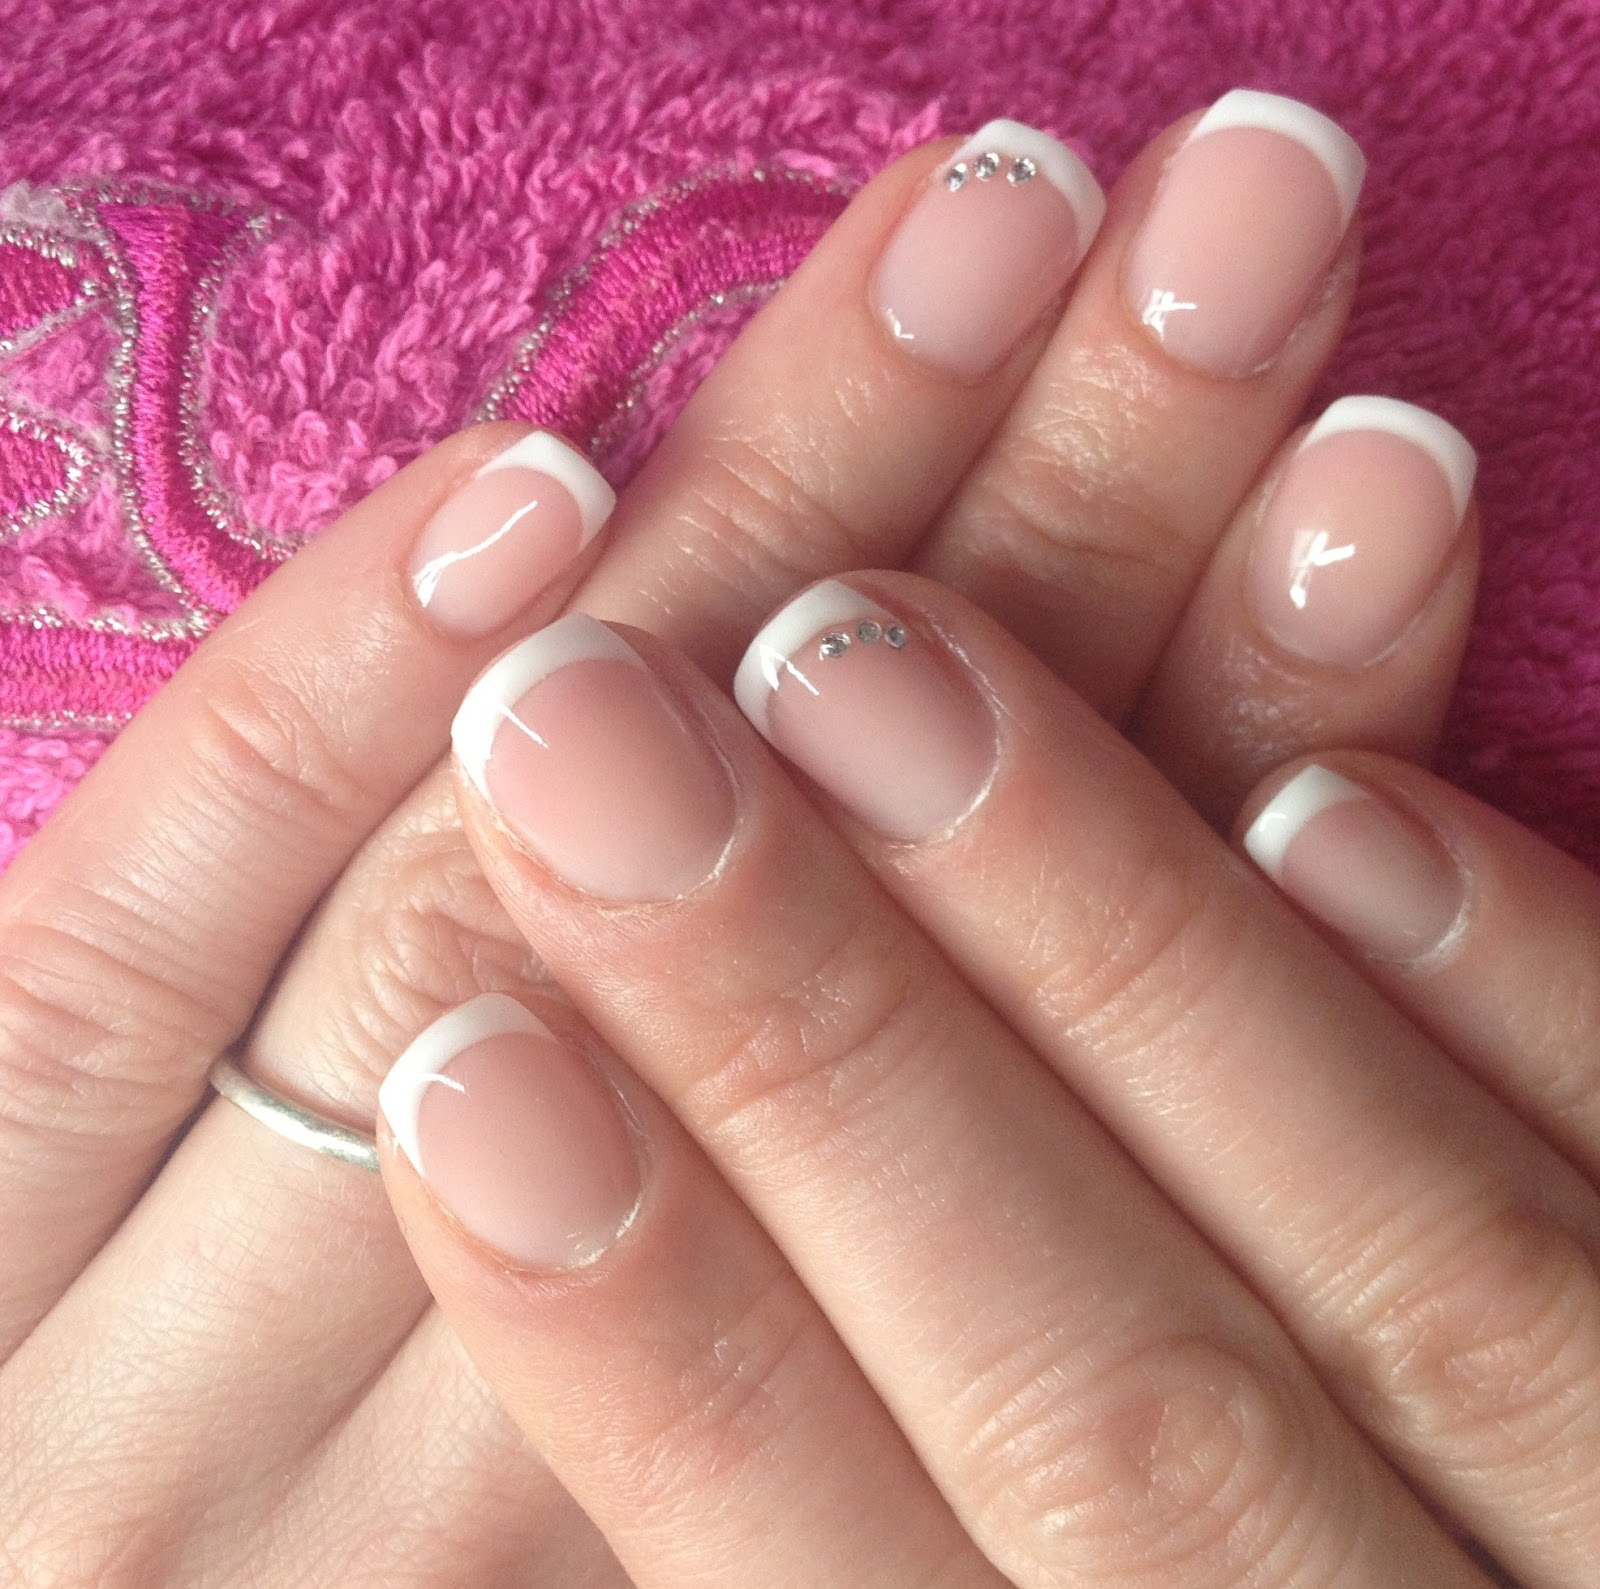 GLAMOUR NAILS: Gel on natural nails - OVERLAY